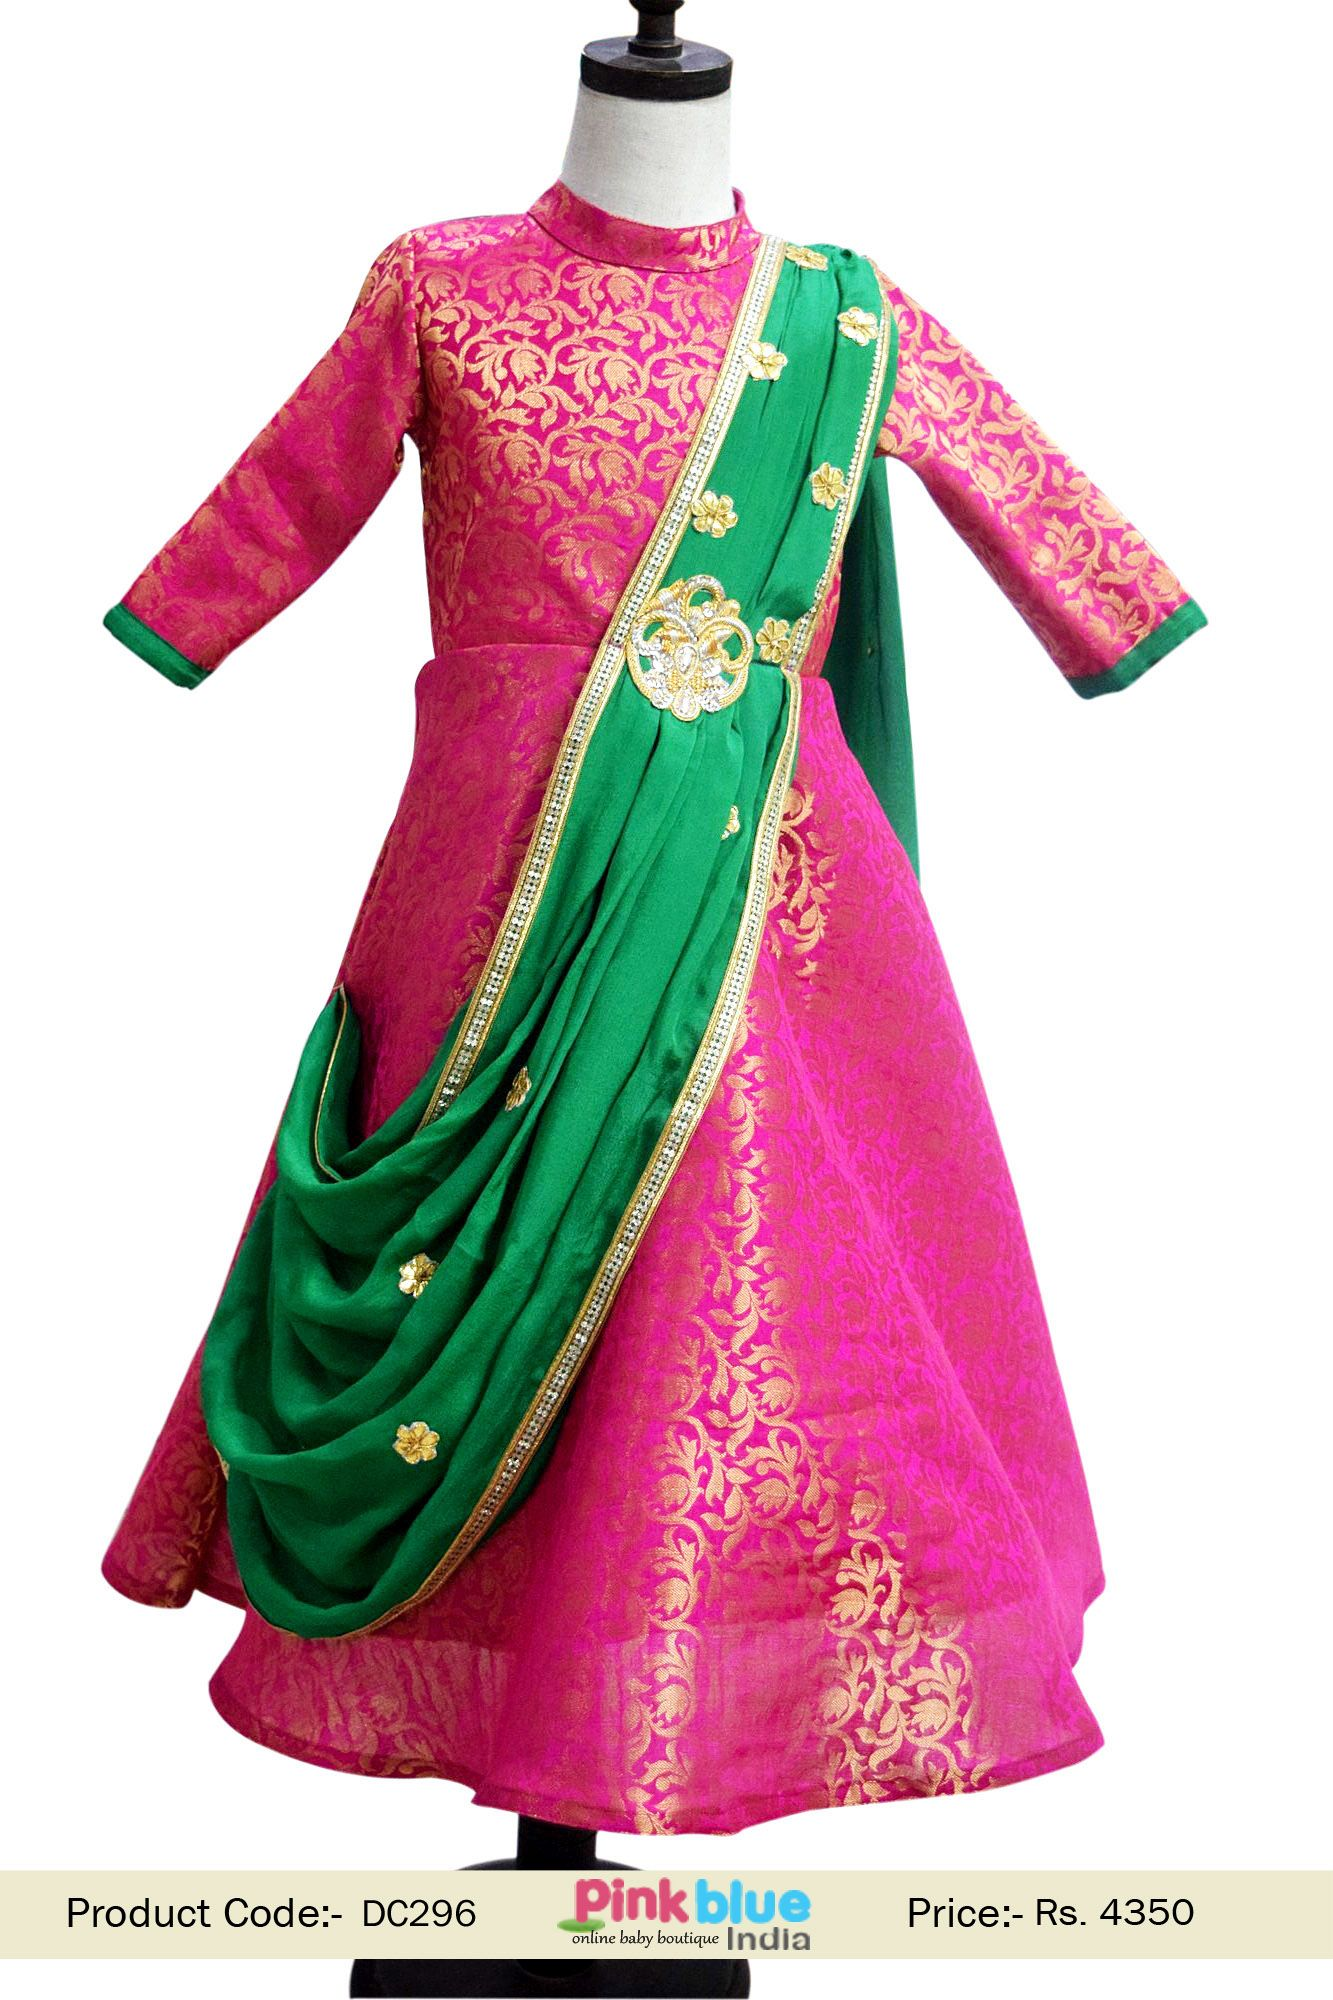 bdba3580 Designer kids ethnic wear in pink color - Exclusive Baby Girl Indo western  style gown for indian weddings and festivals. customized dress #ethnicwear  ...